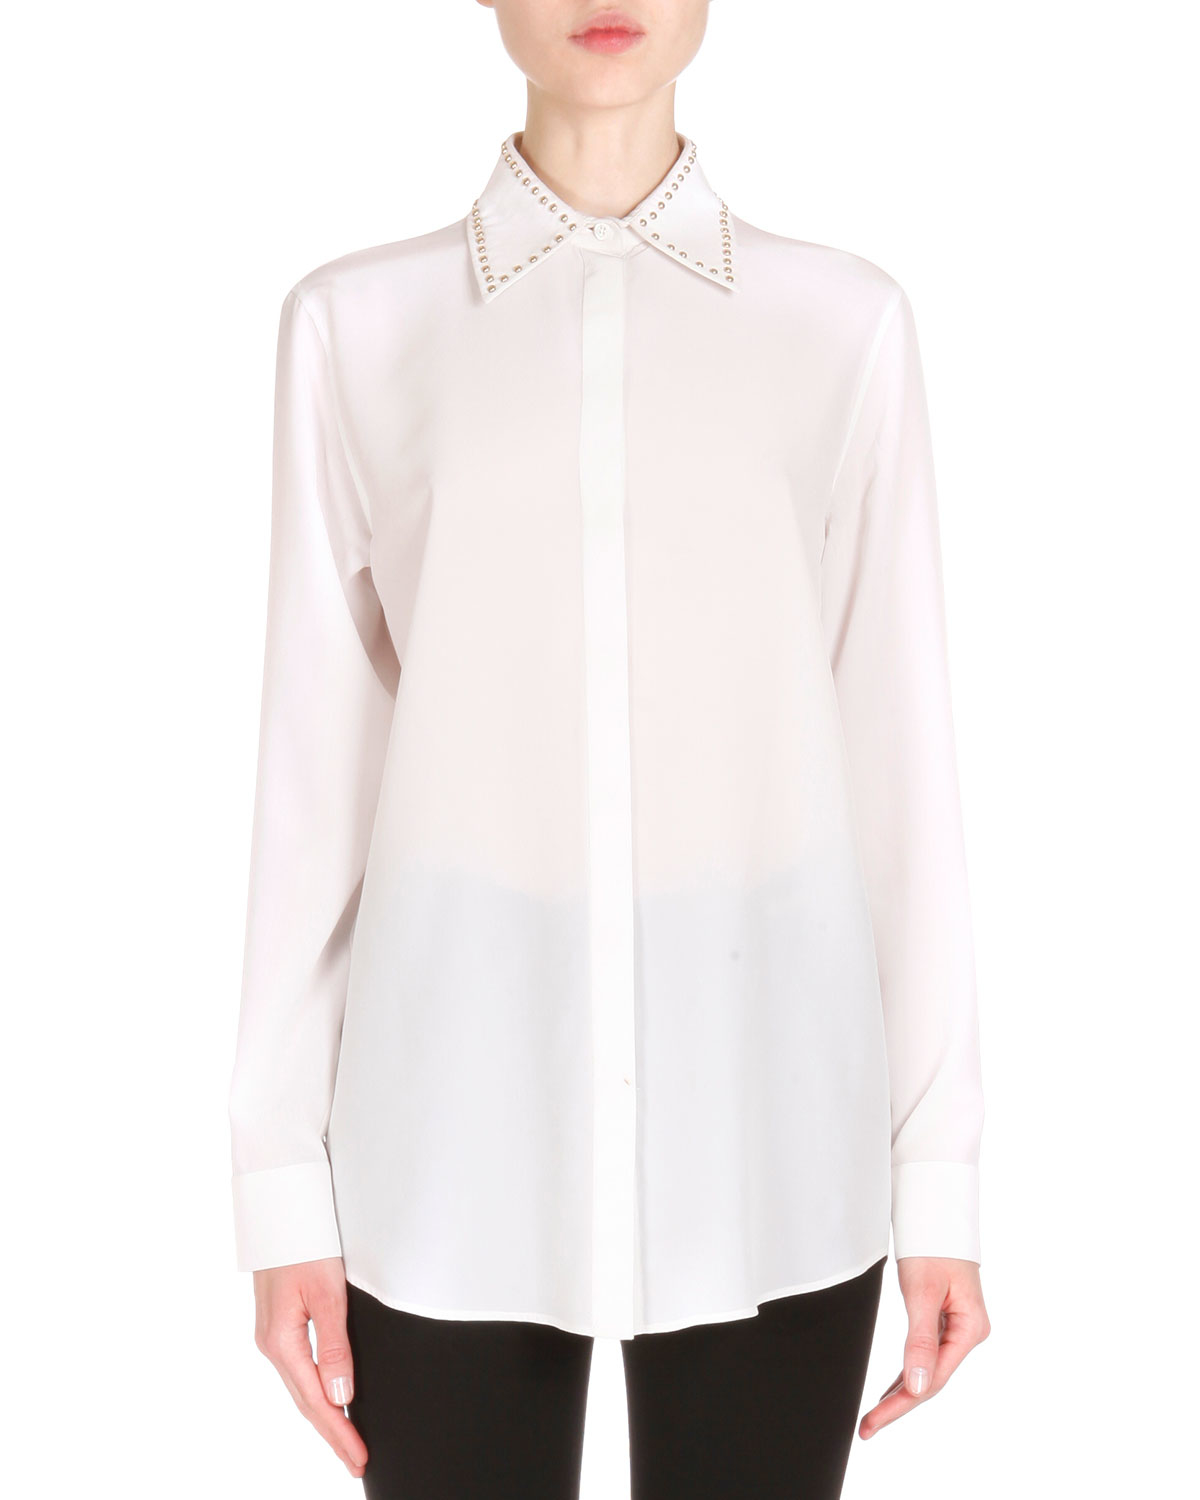 Zara White Blouse With Studded Collar 24